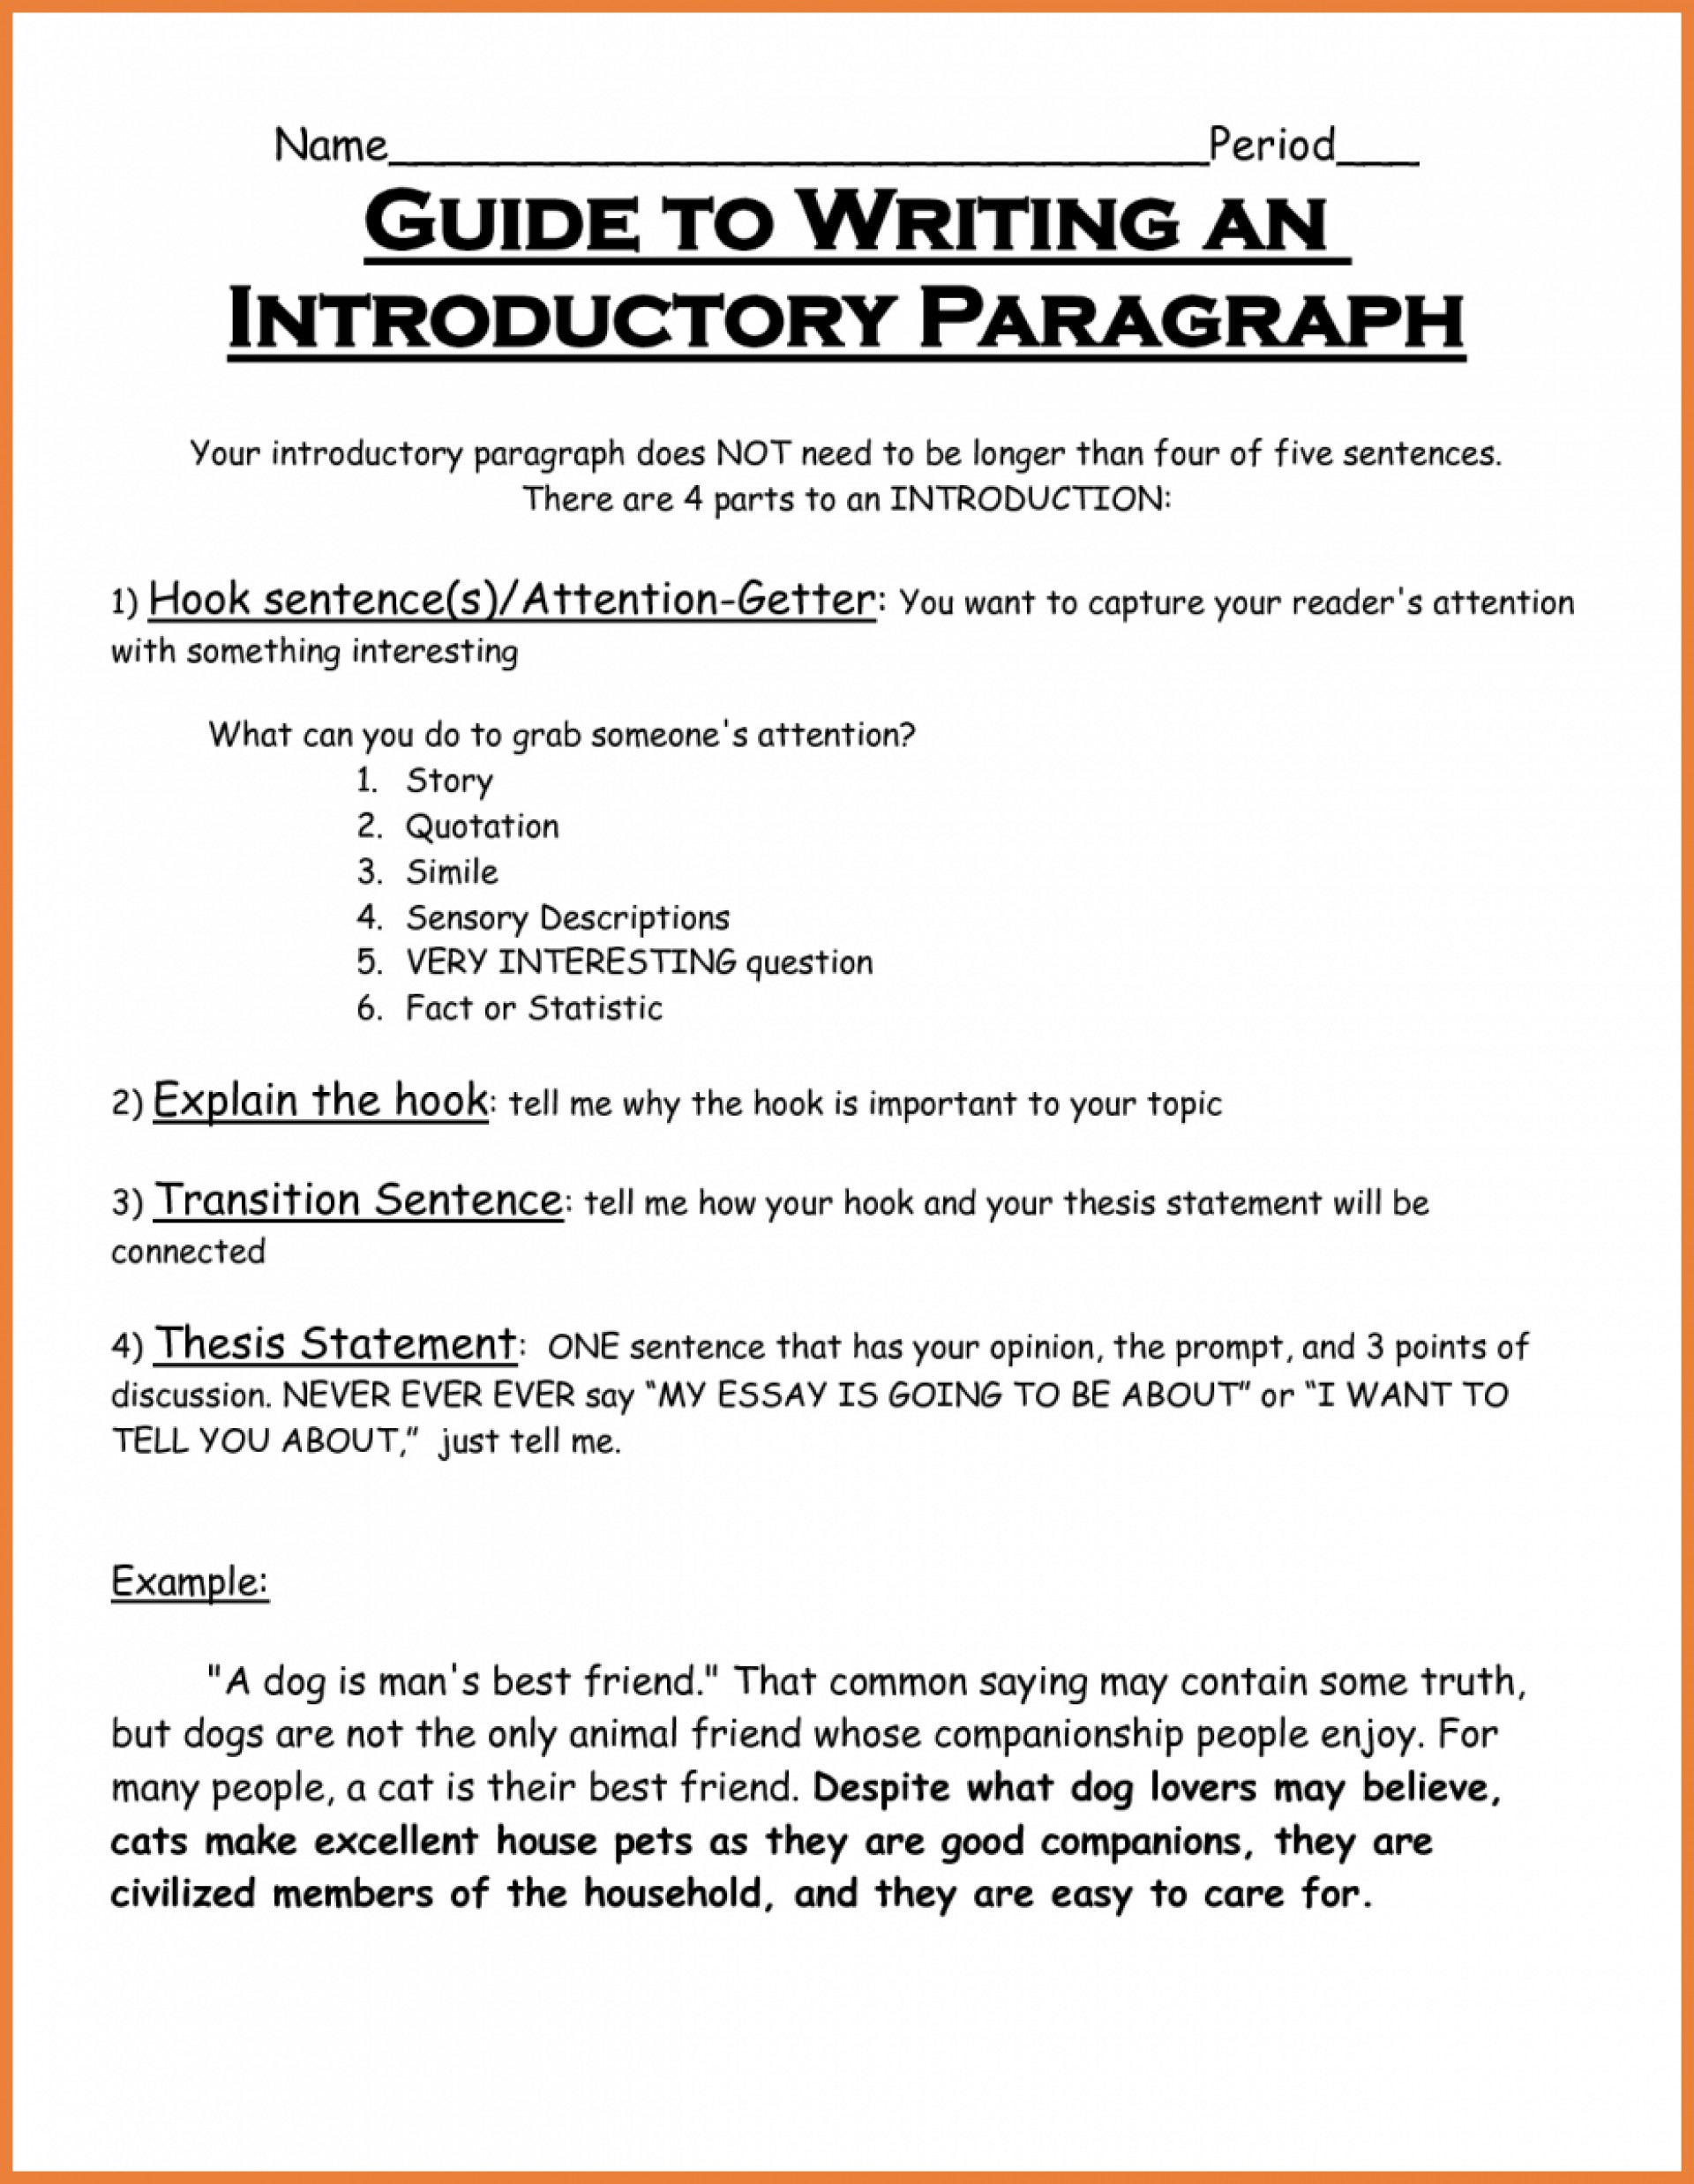 014 How Many Sentences Are In Paragraph For An Essay Example Wondrous A College Should Be Of Each 1920